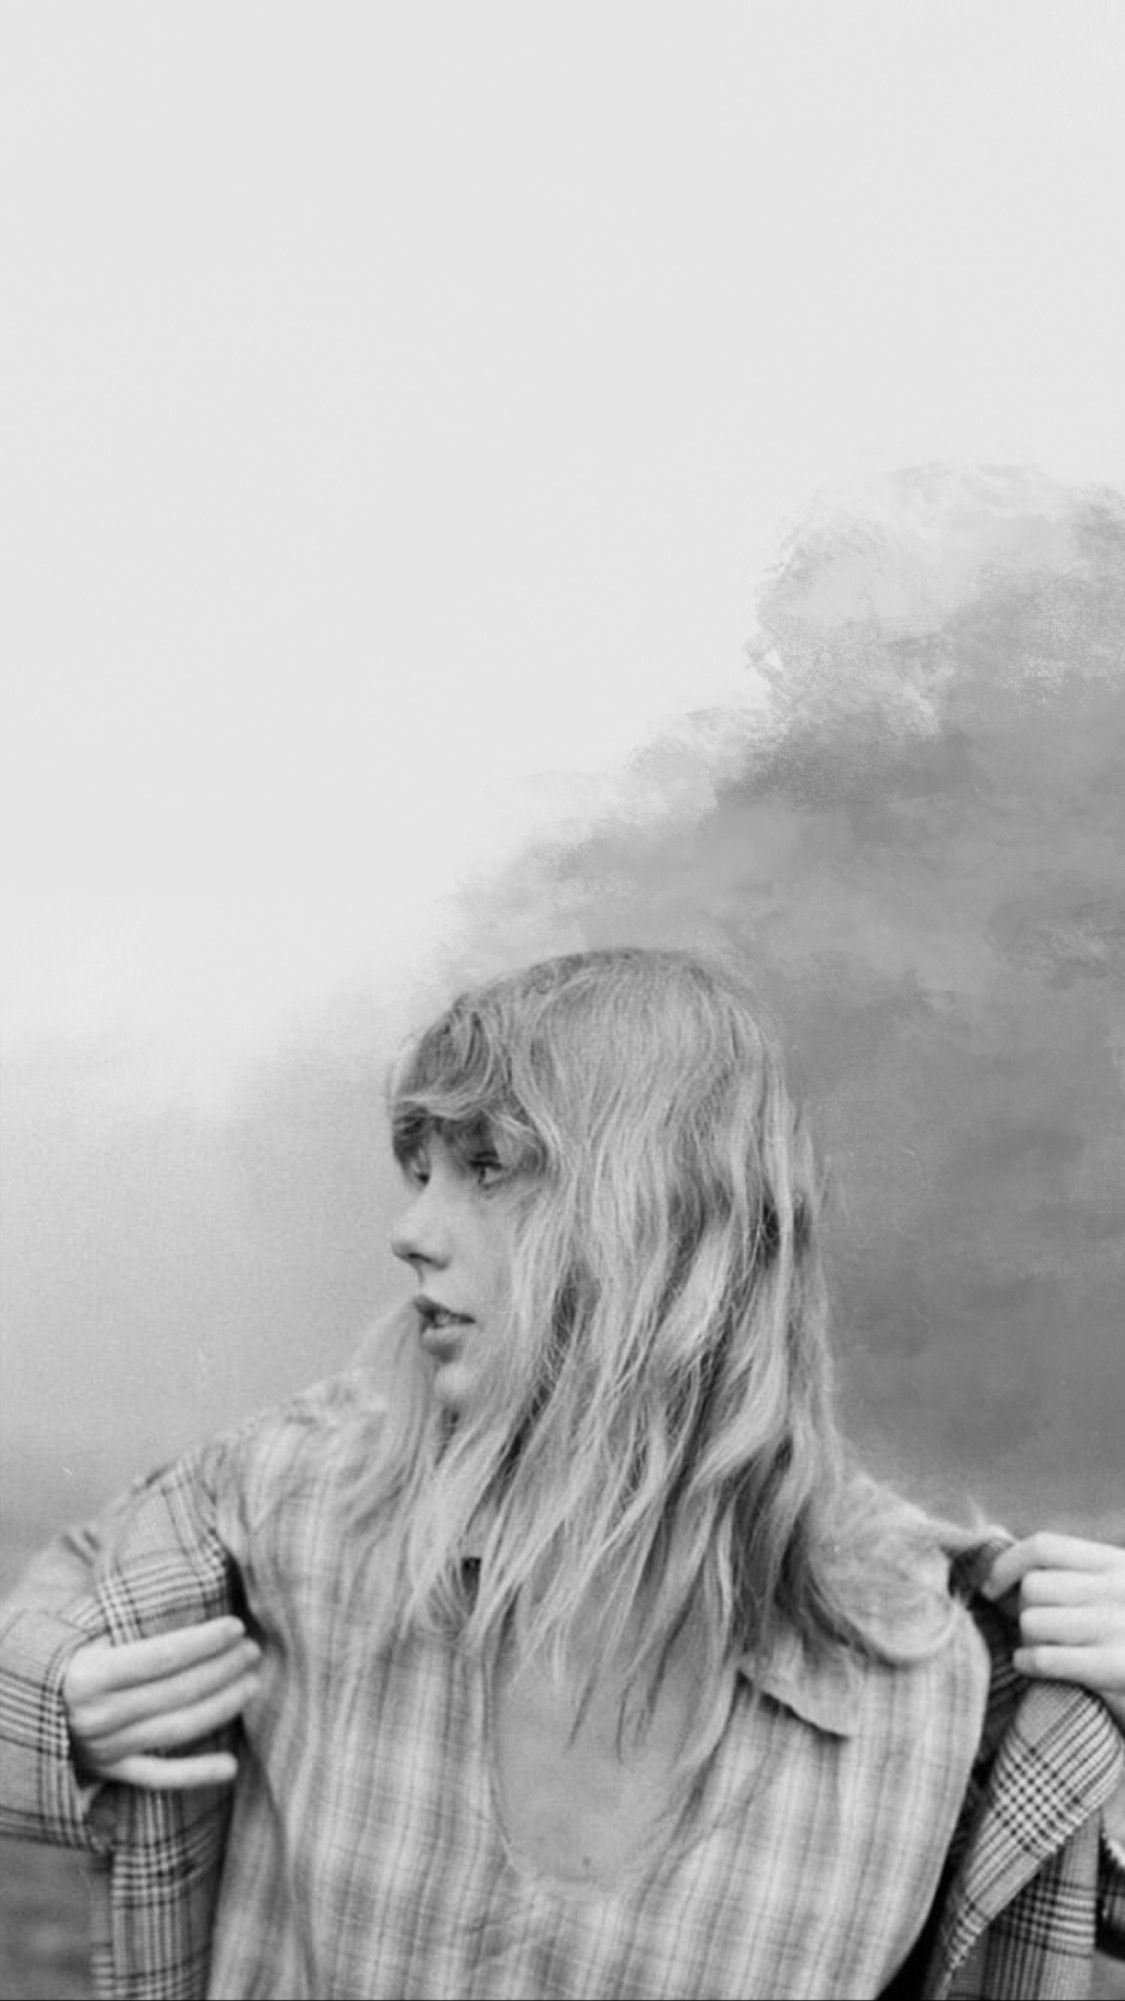 Taylor Swift Folklore Wallpaper Iphone HD in 2020 1125x2001